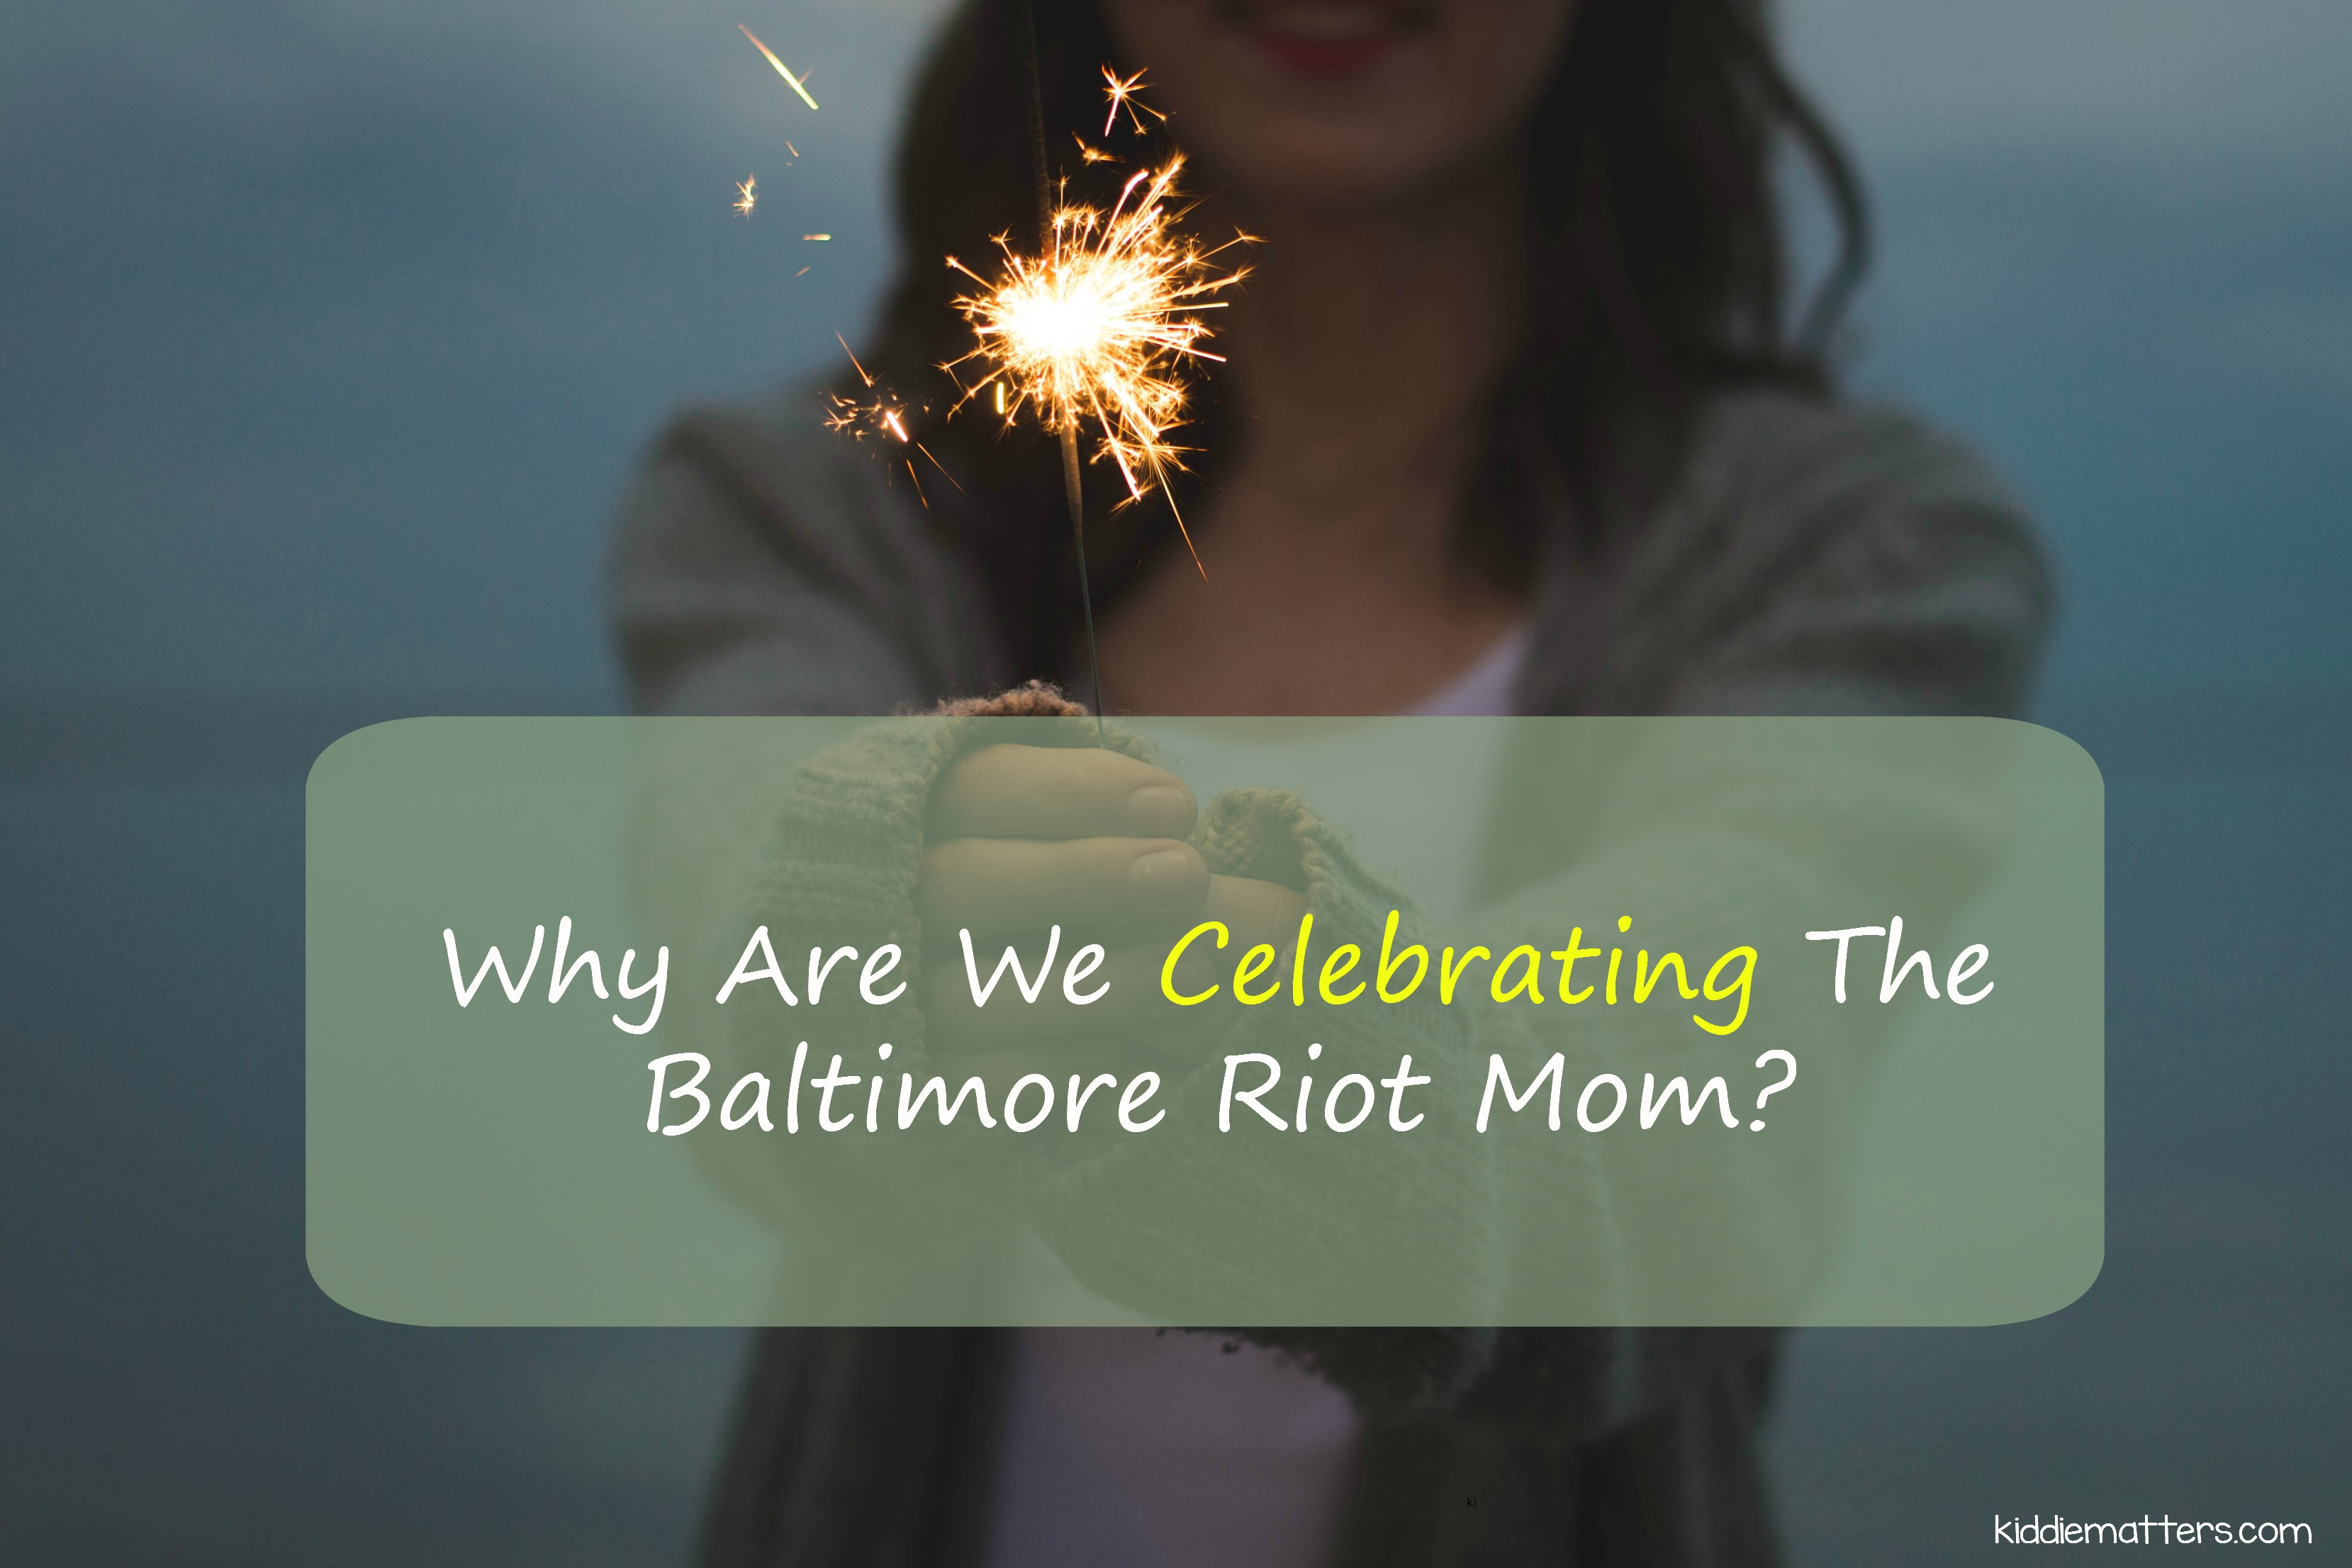 Why Are We Celebrating the Baltimore Riot Mom?